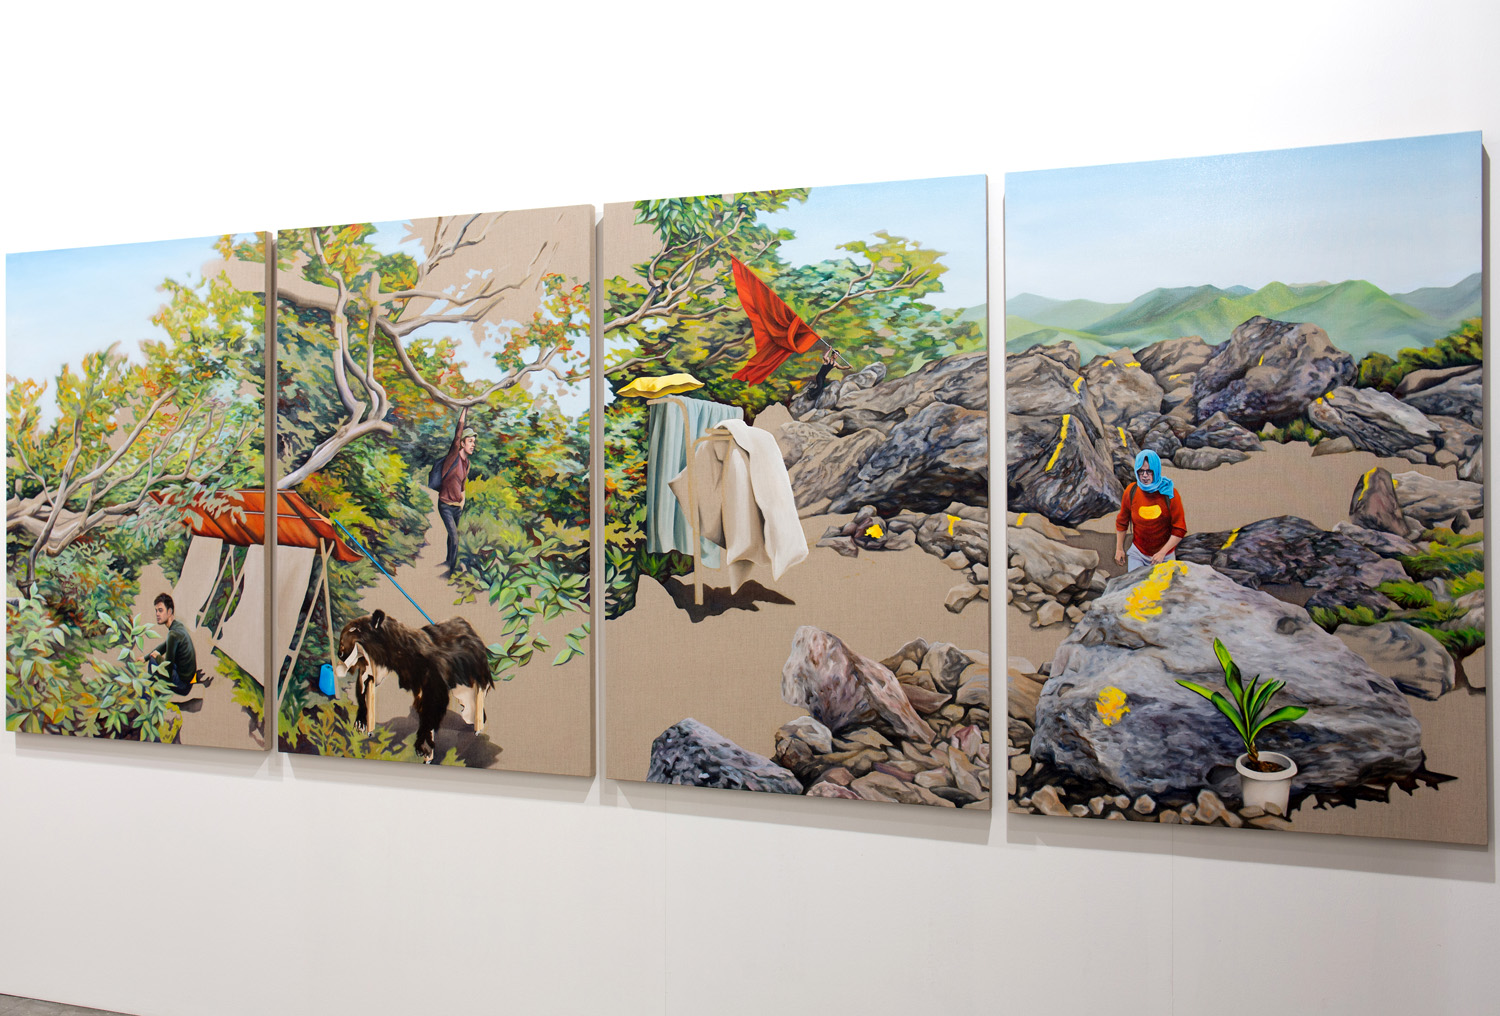 Kevin Chin, Pass By, 2014, oil on linen, 146 x 400 cm